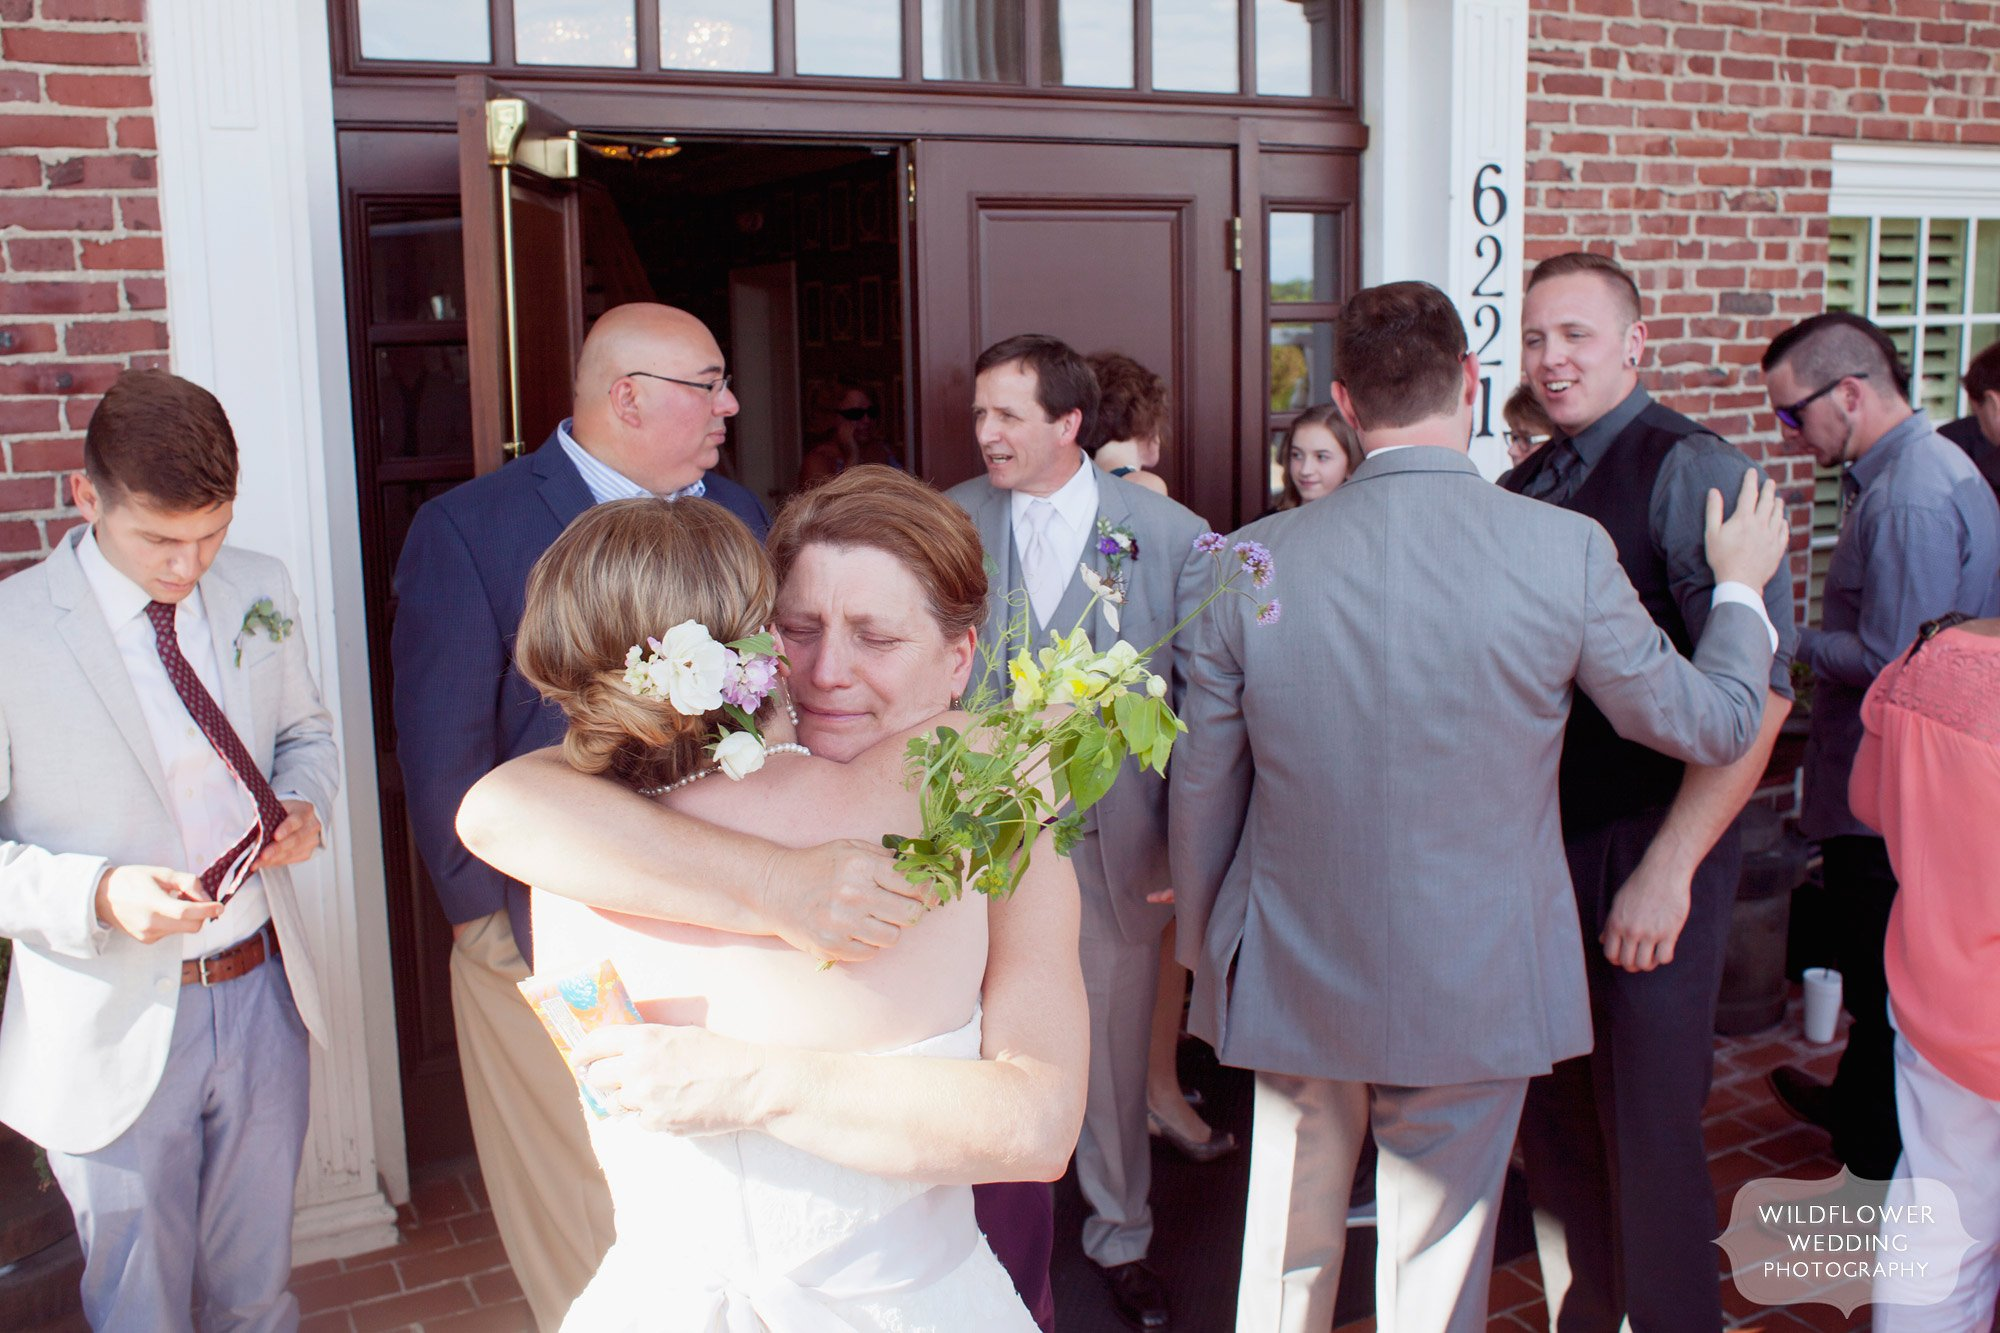 Mother of the bride emotionally hugs her daughter after the ceremony.